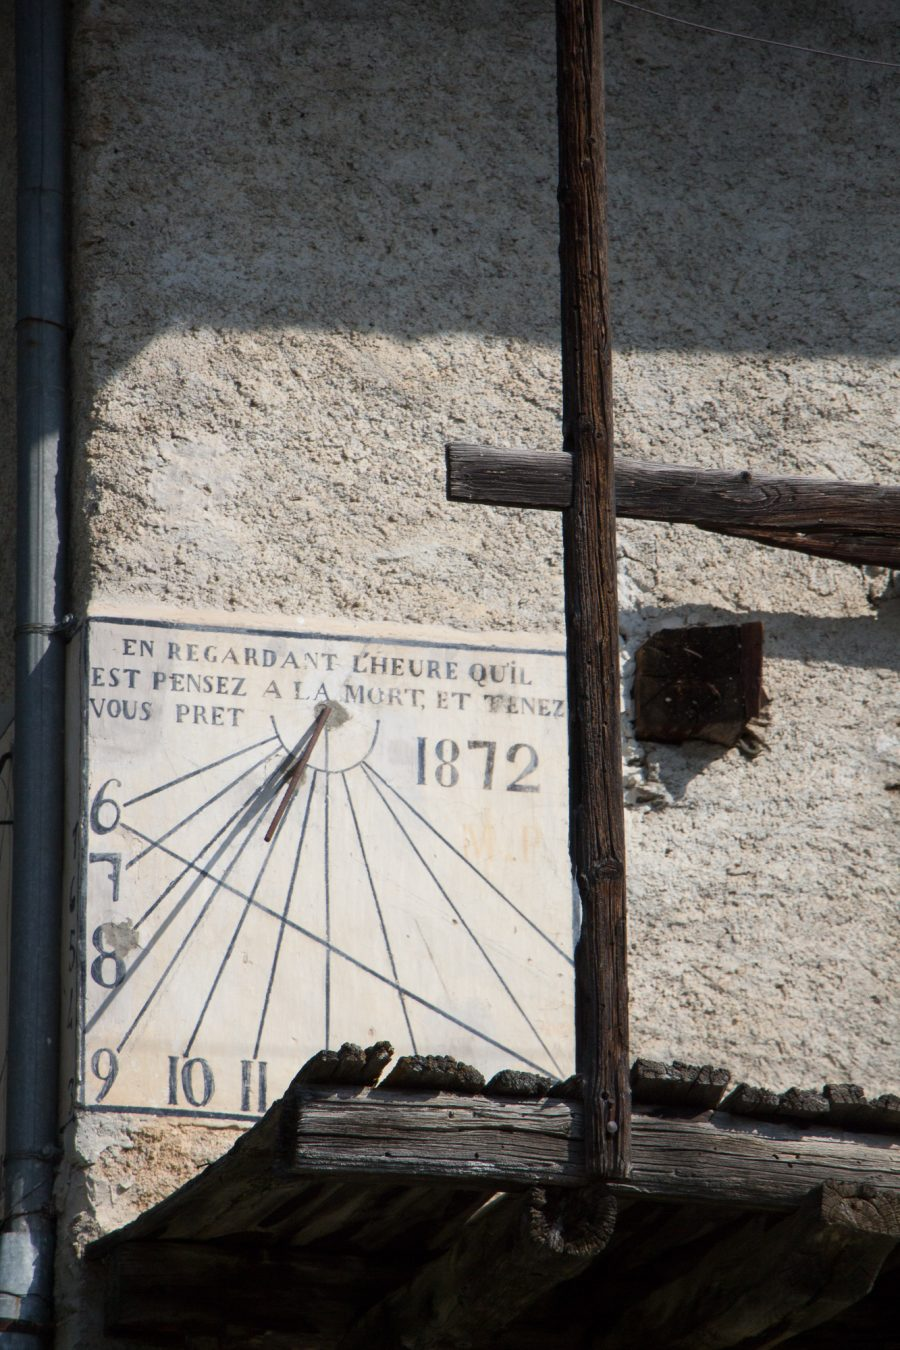 Sundial on a wall at Allevè, 2018